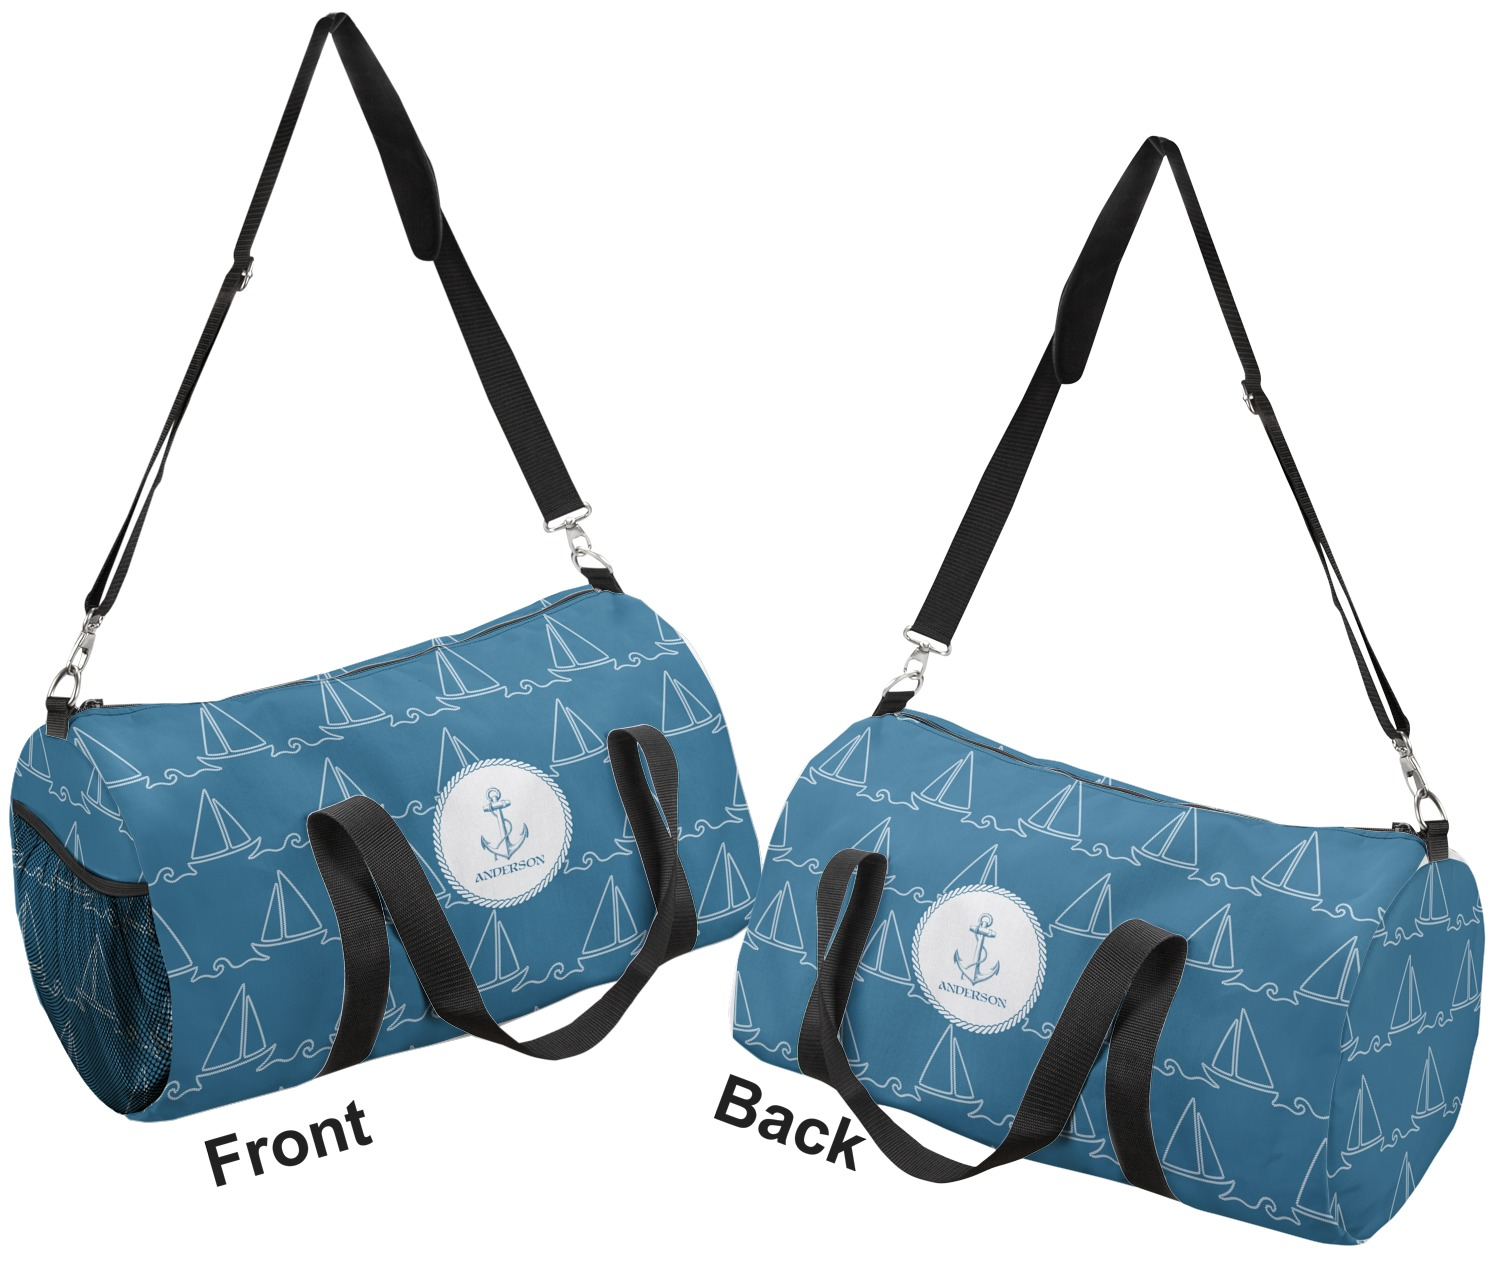 YouCustomizeIt Linked Rope Duffel Bag Personalized